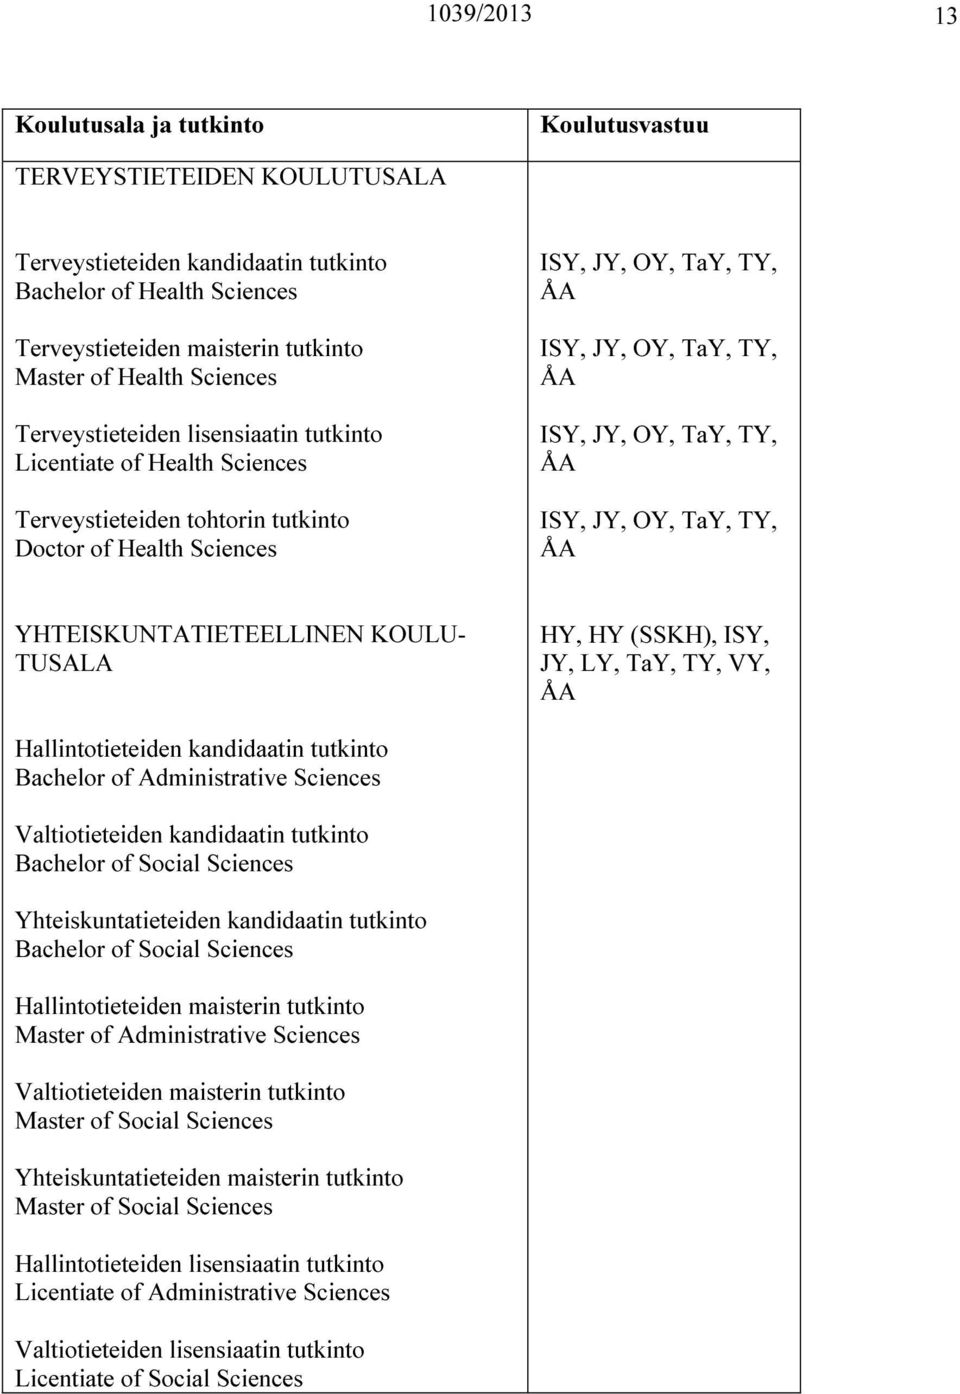 YHTEISKUNTATIETEELLINEN KOULU- TUSALA, (SSKH), ISY, JY, LY, TaY, TY, VY, Hallintotieteiden kandidaatin tutkinto Bachelor of Administrative Sciences Valtiotieteiden kandidaatin tutkinto Bachelor of